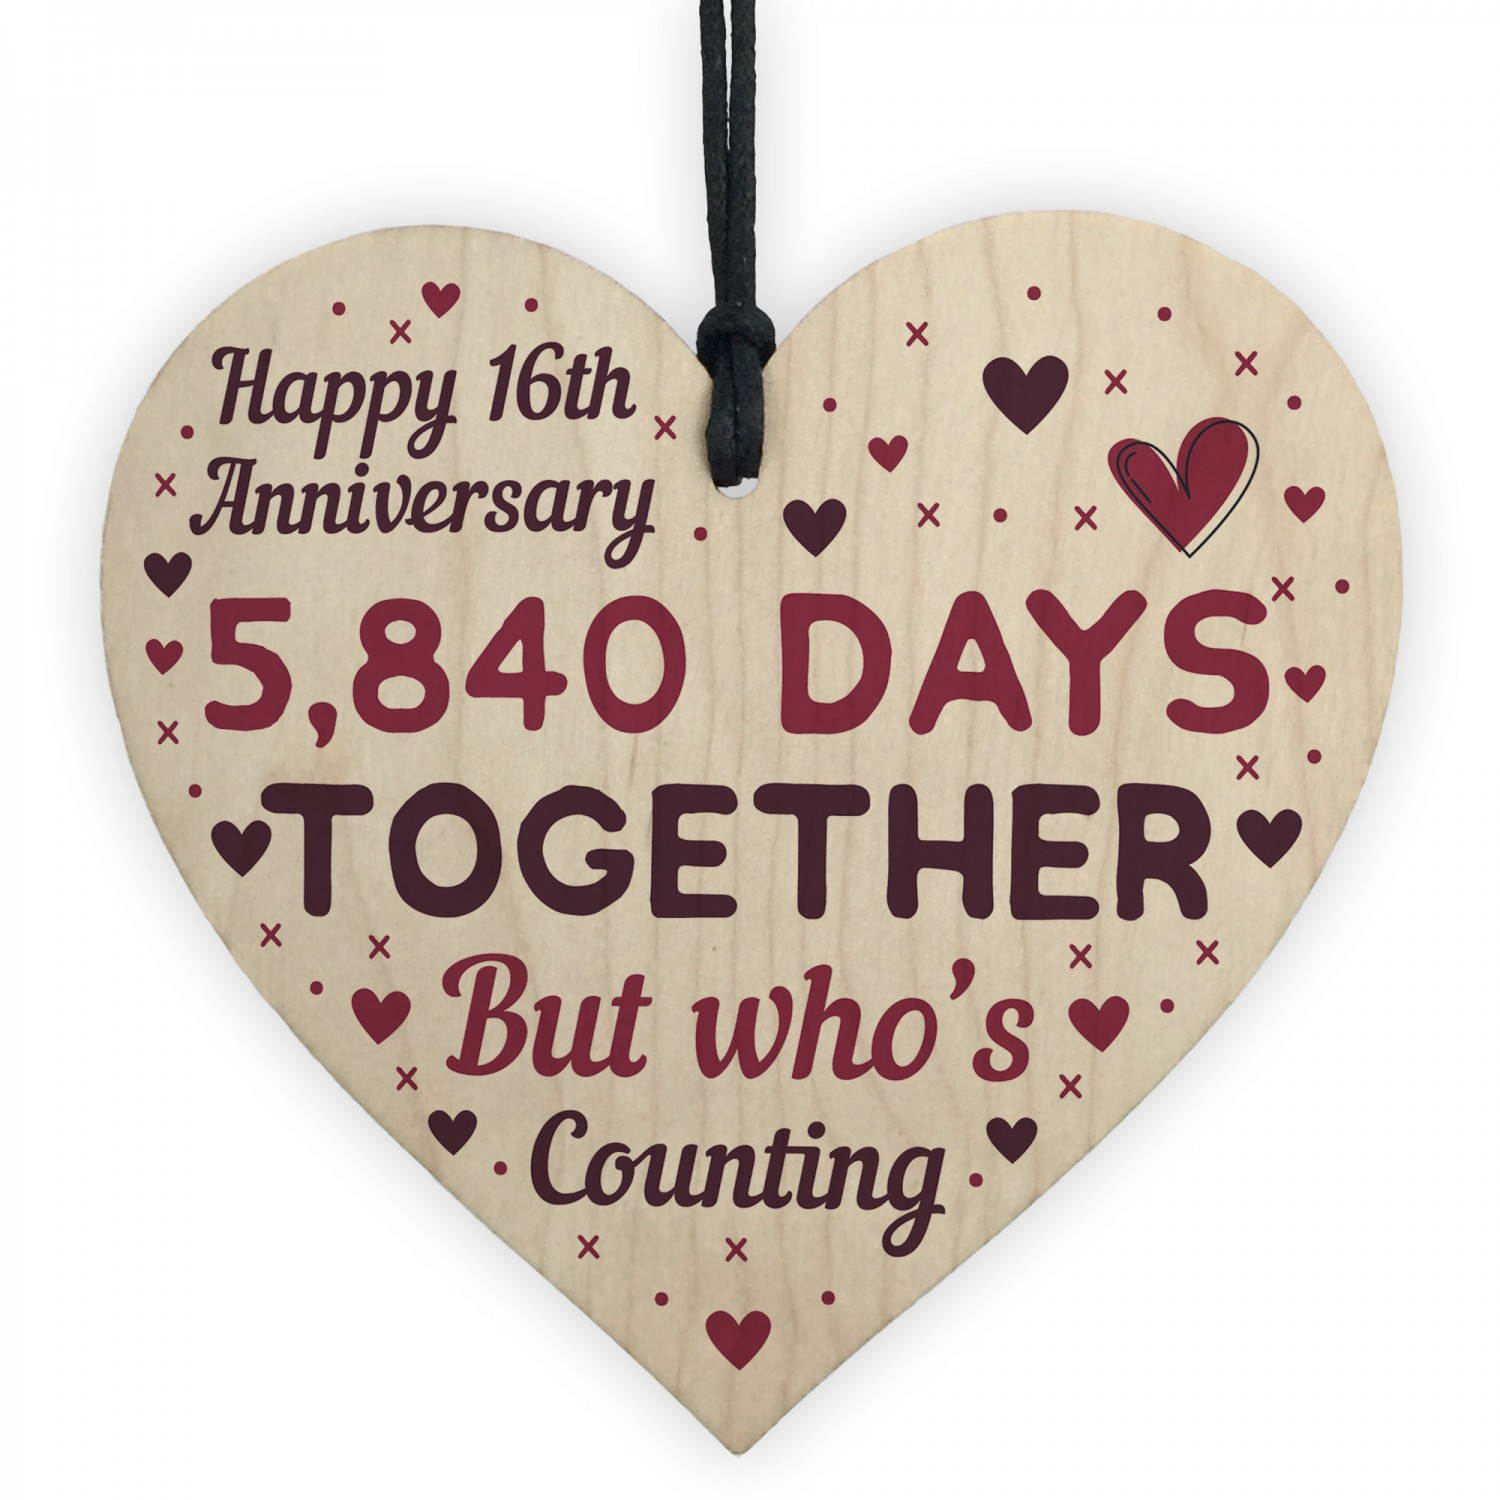 Handmade Wood Heart Gift To Celebrate 16th Wedding Anniversary